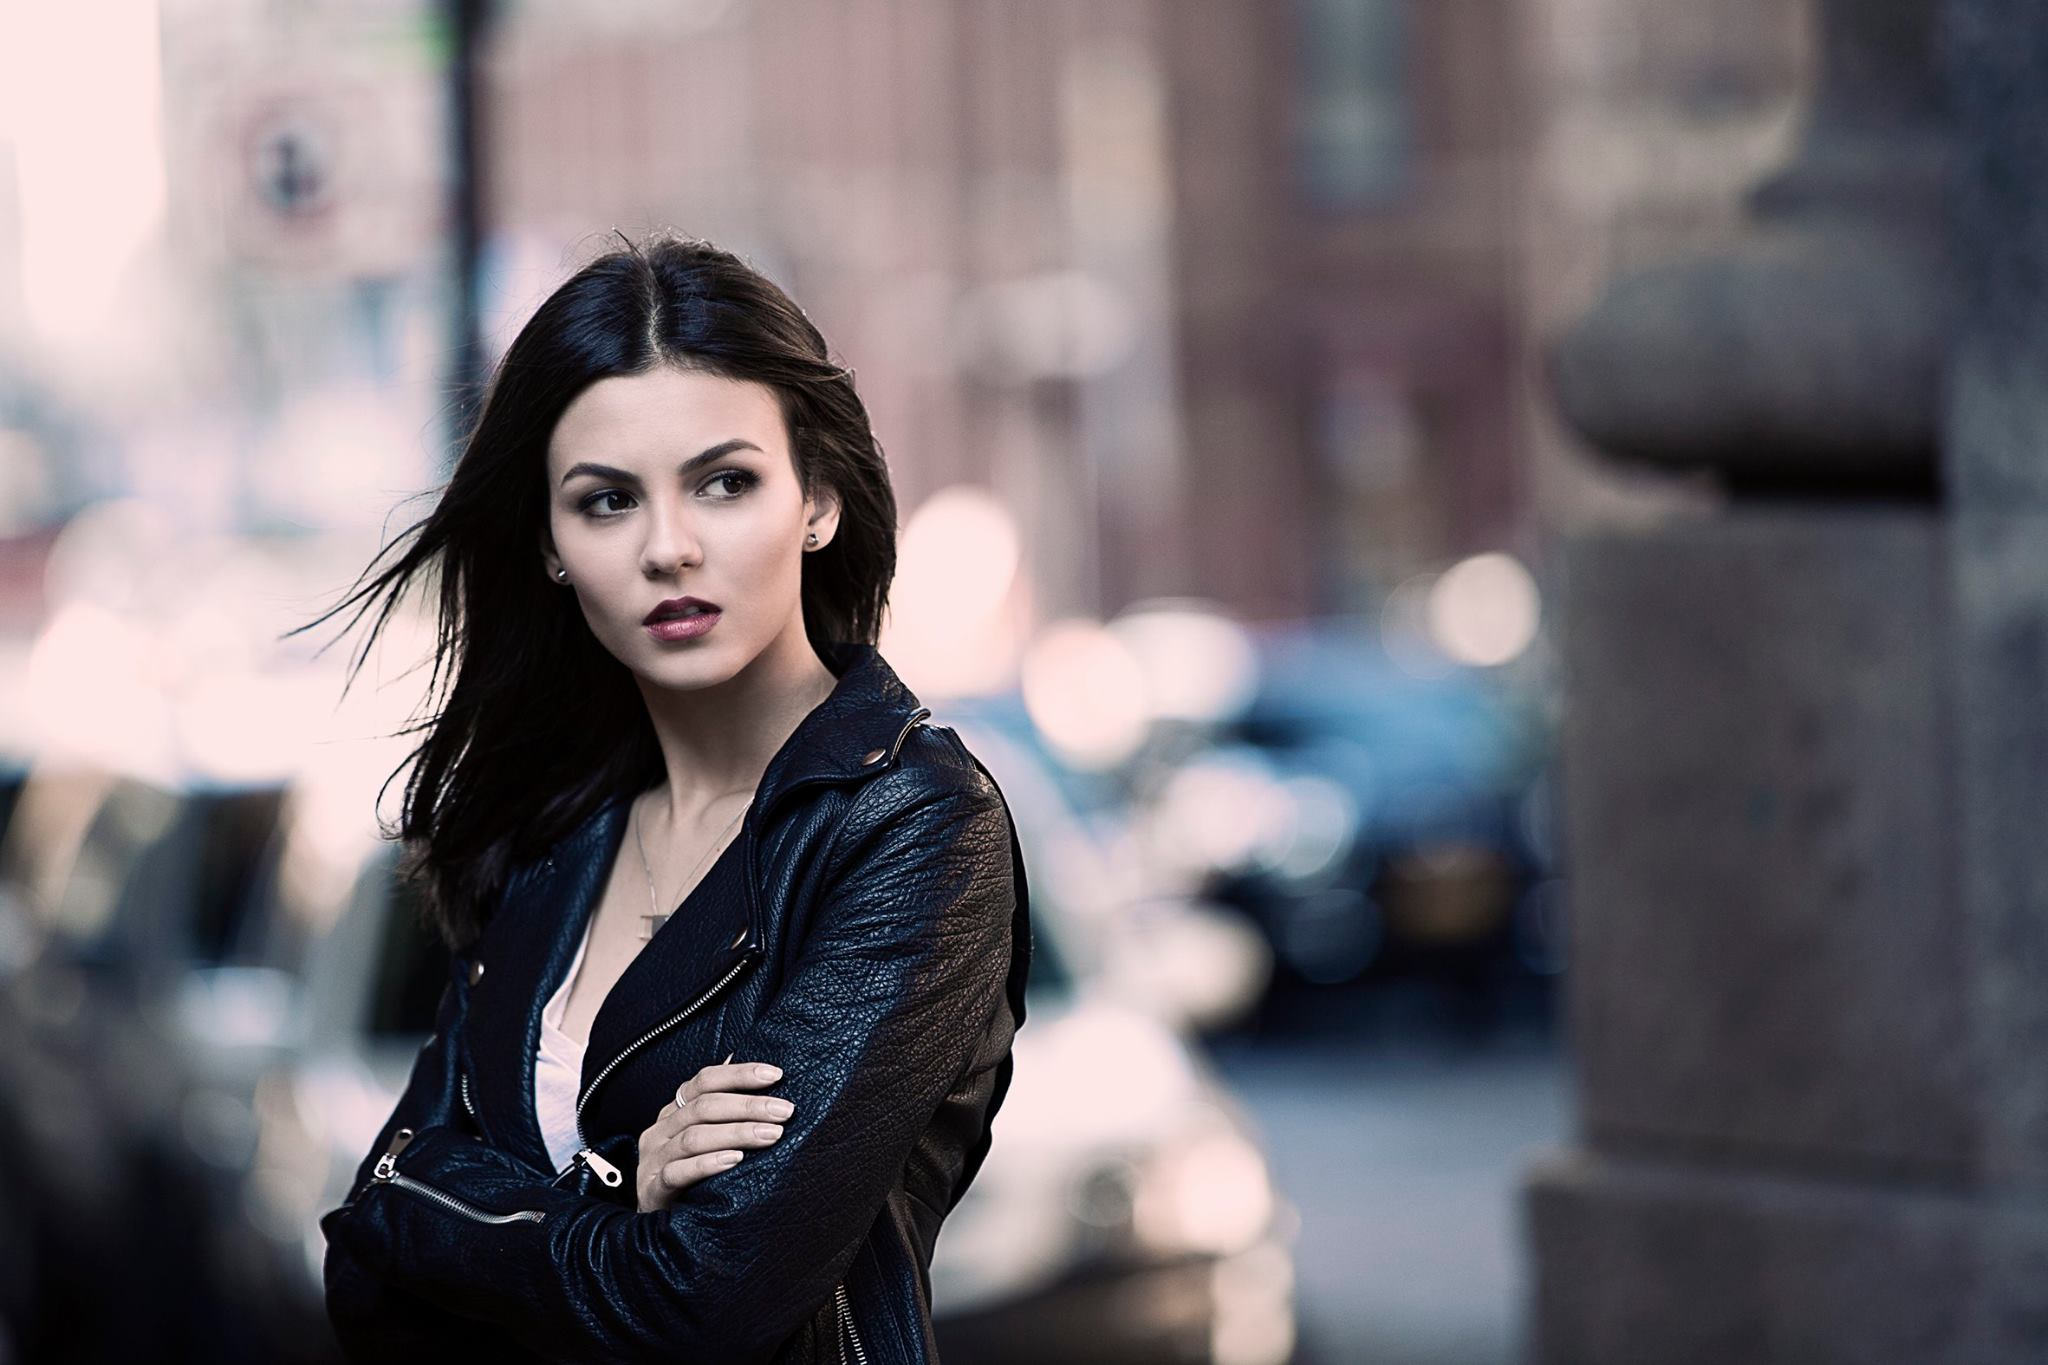 Victoria Justice 3 HD Celebrities 4k Wallpapers Images